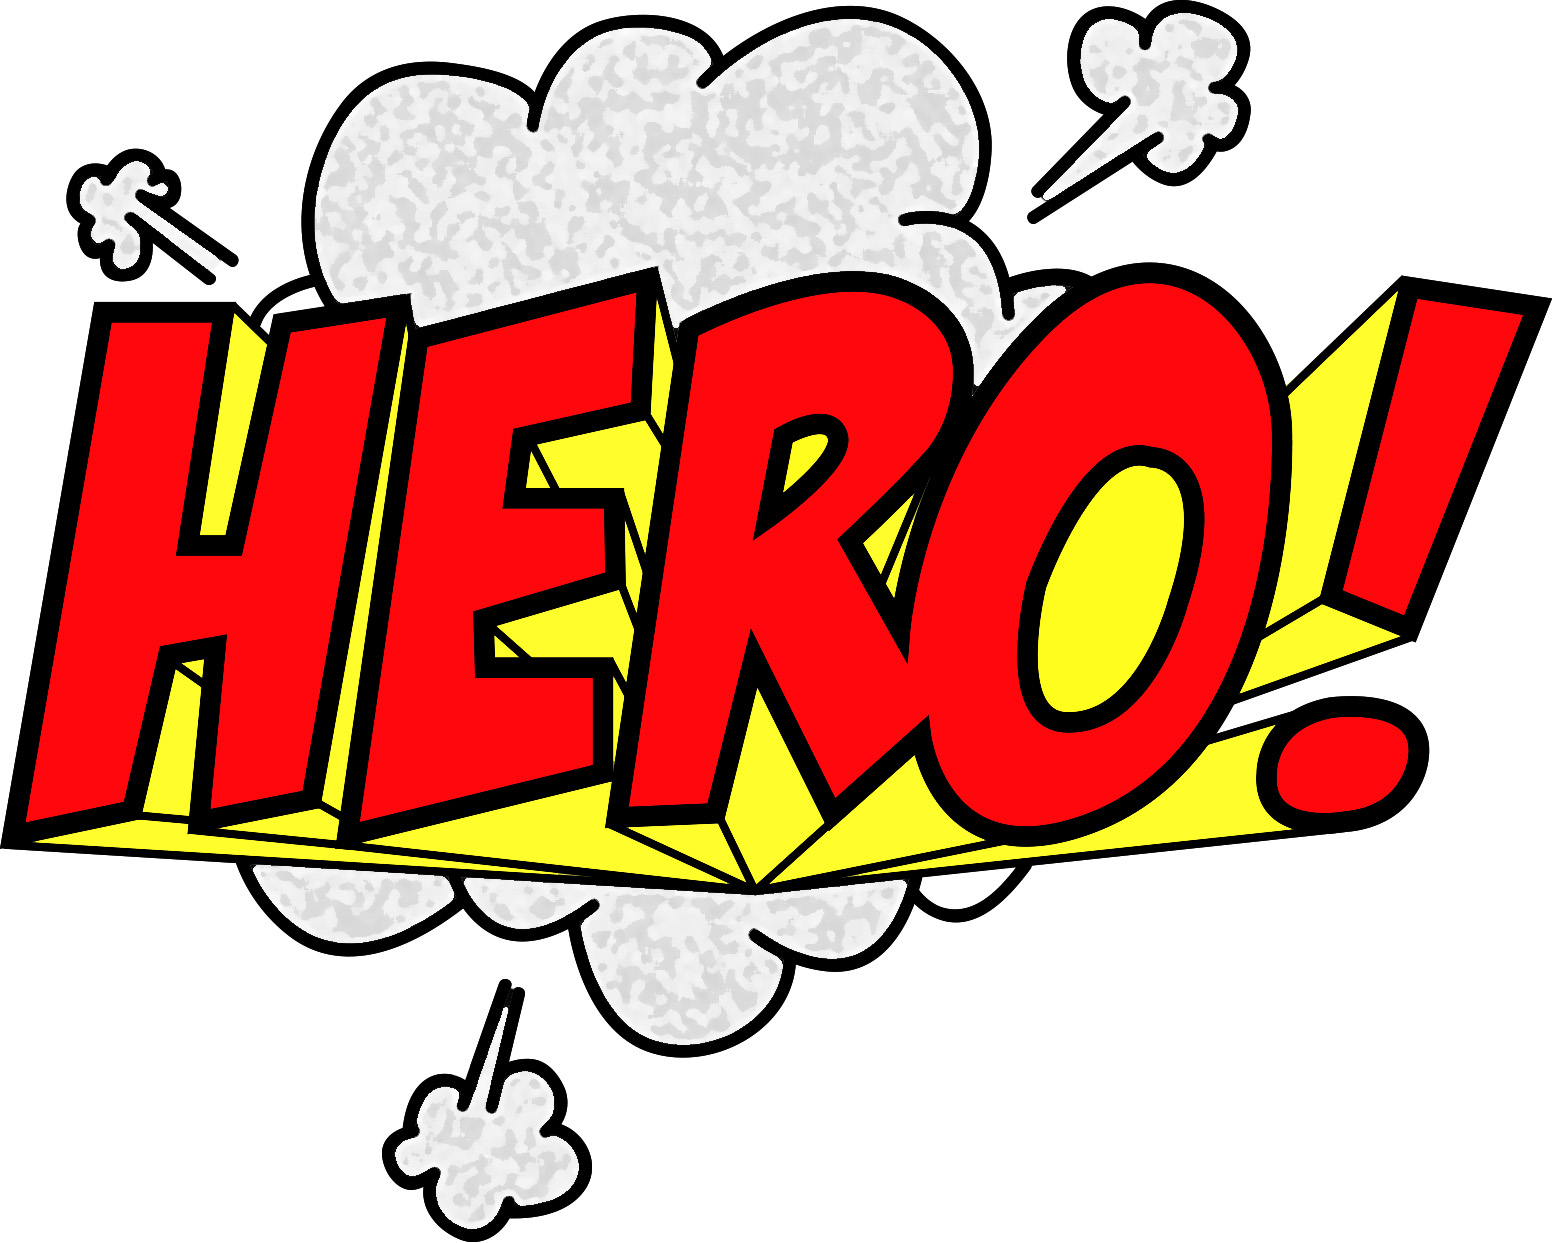 Superhero words clipart 5